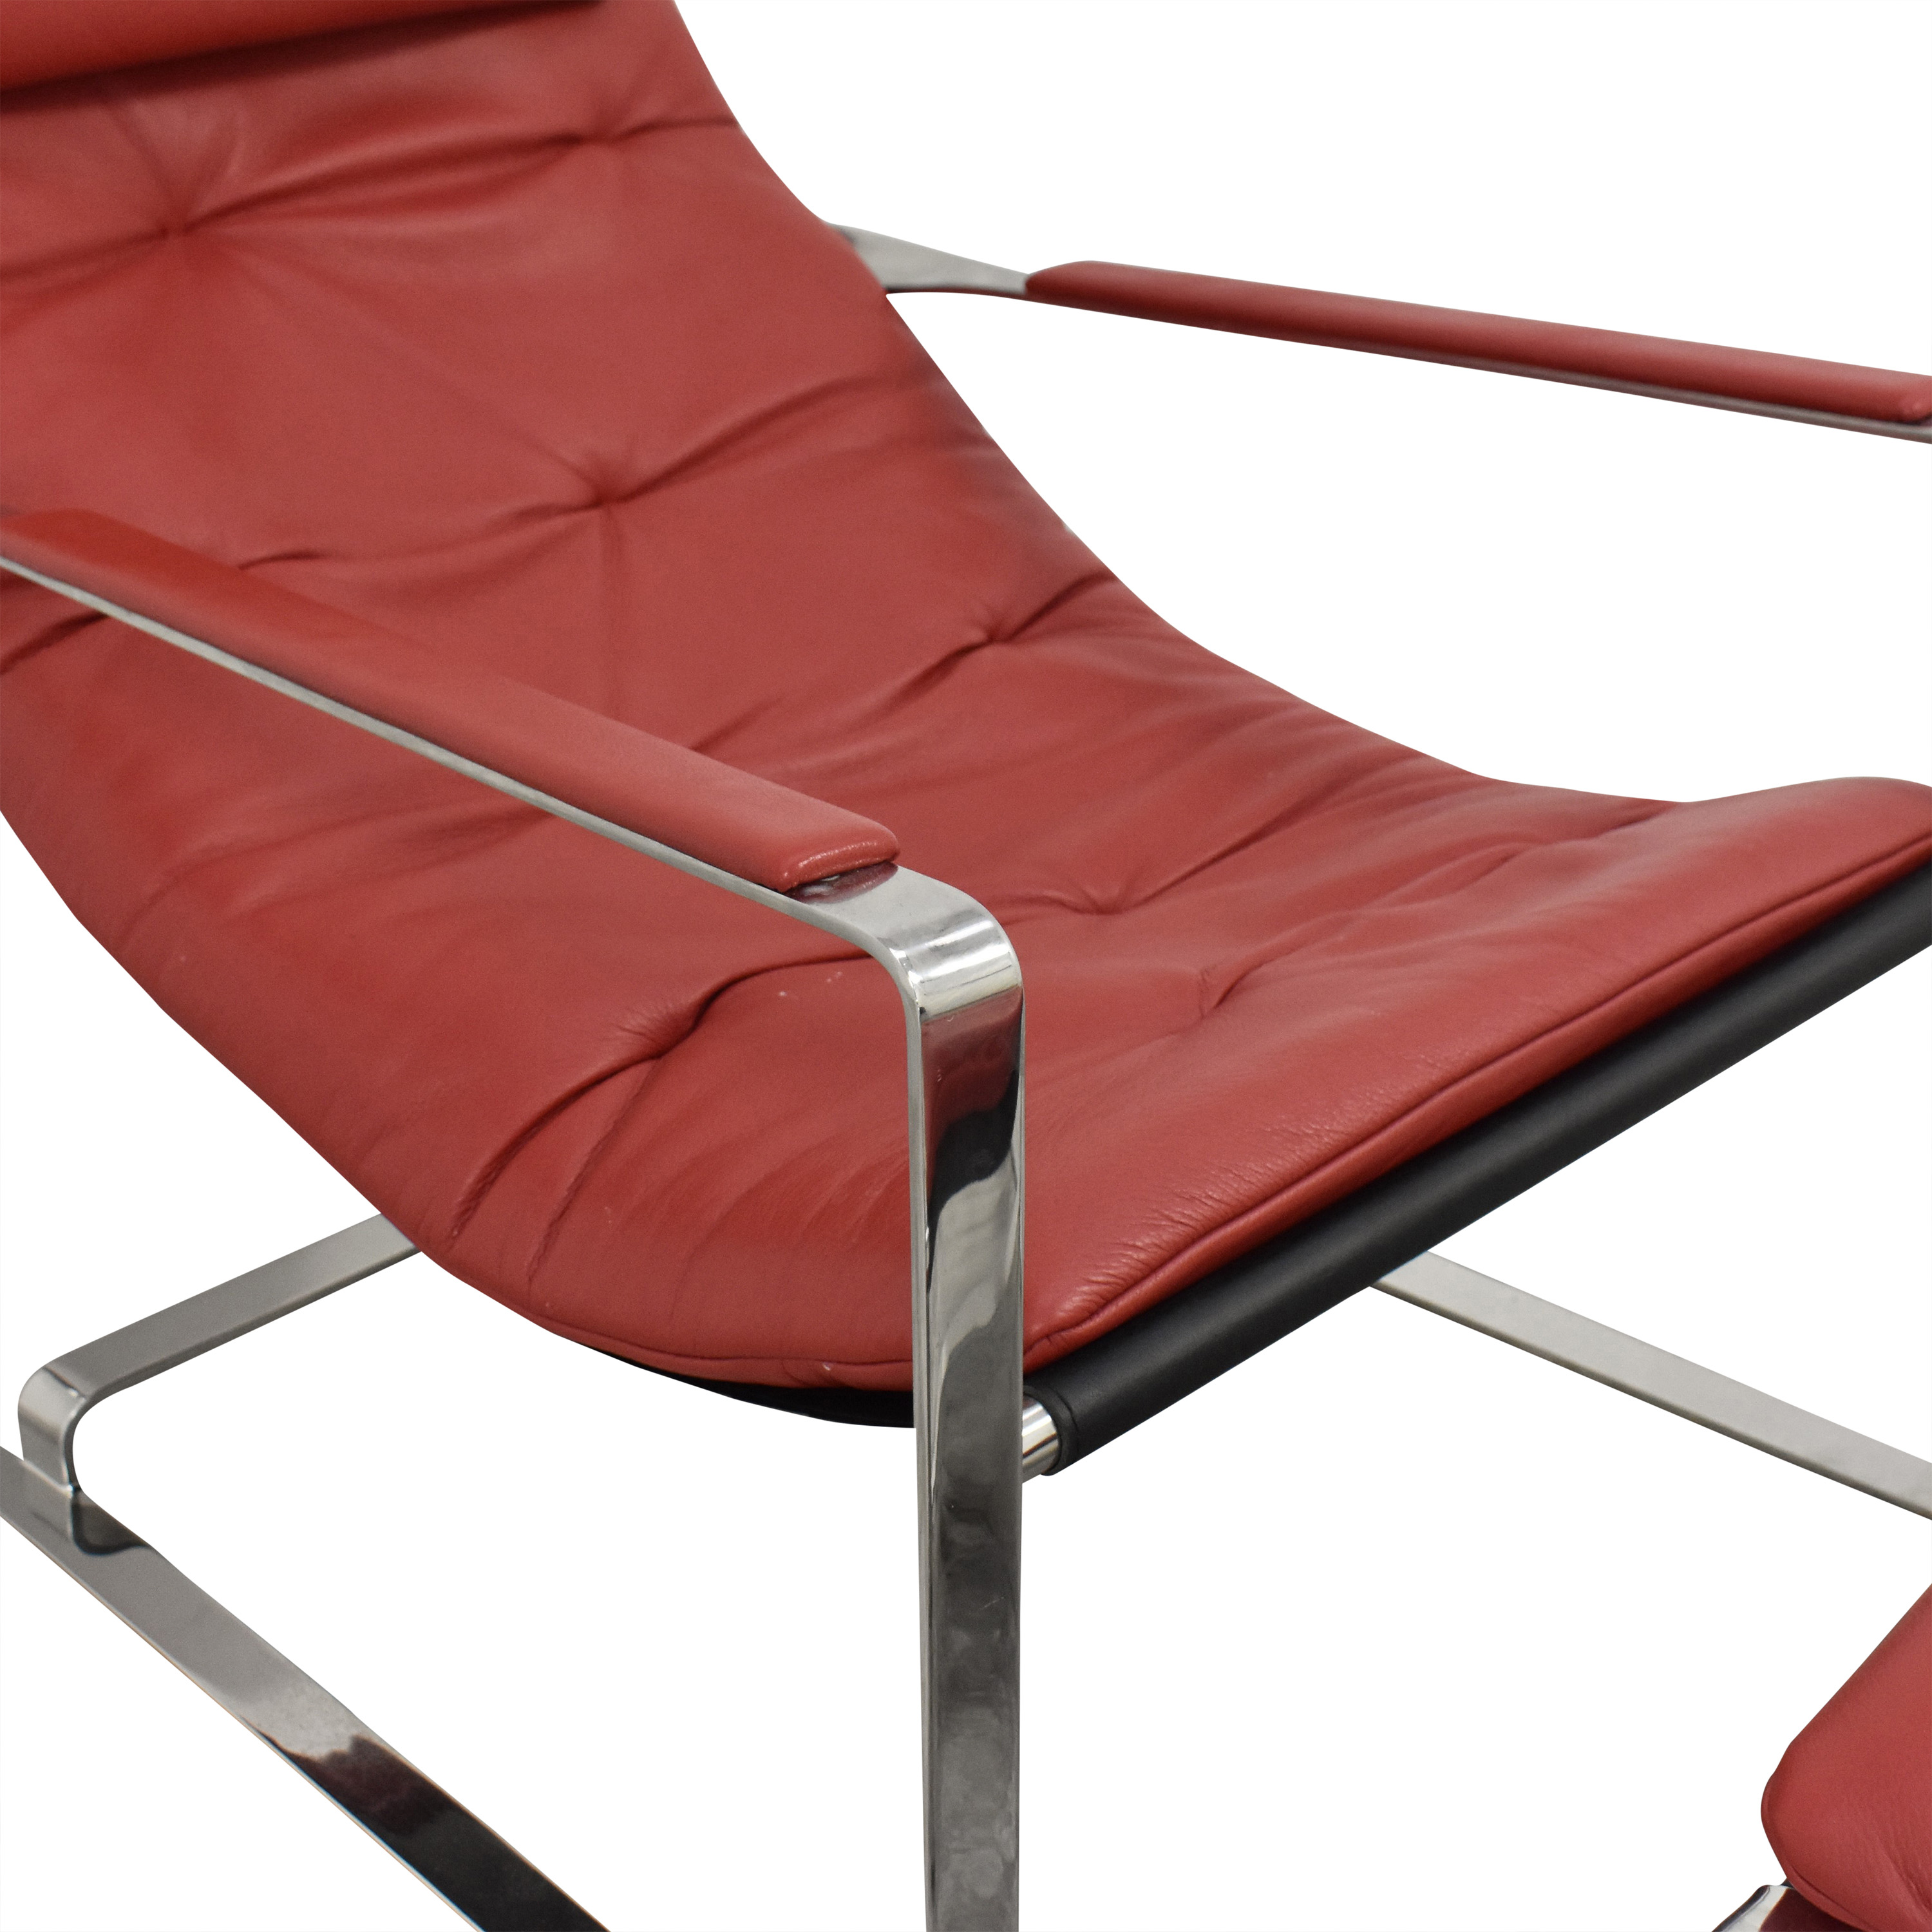 Sling Style Lounge Chair with Ottoman sale